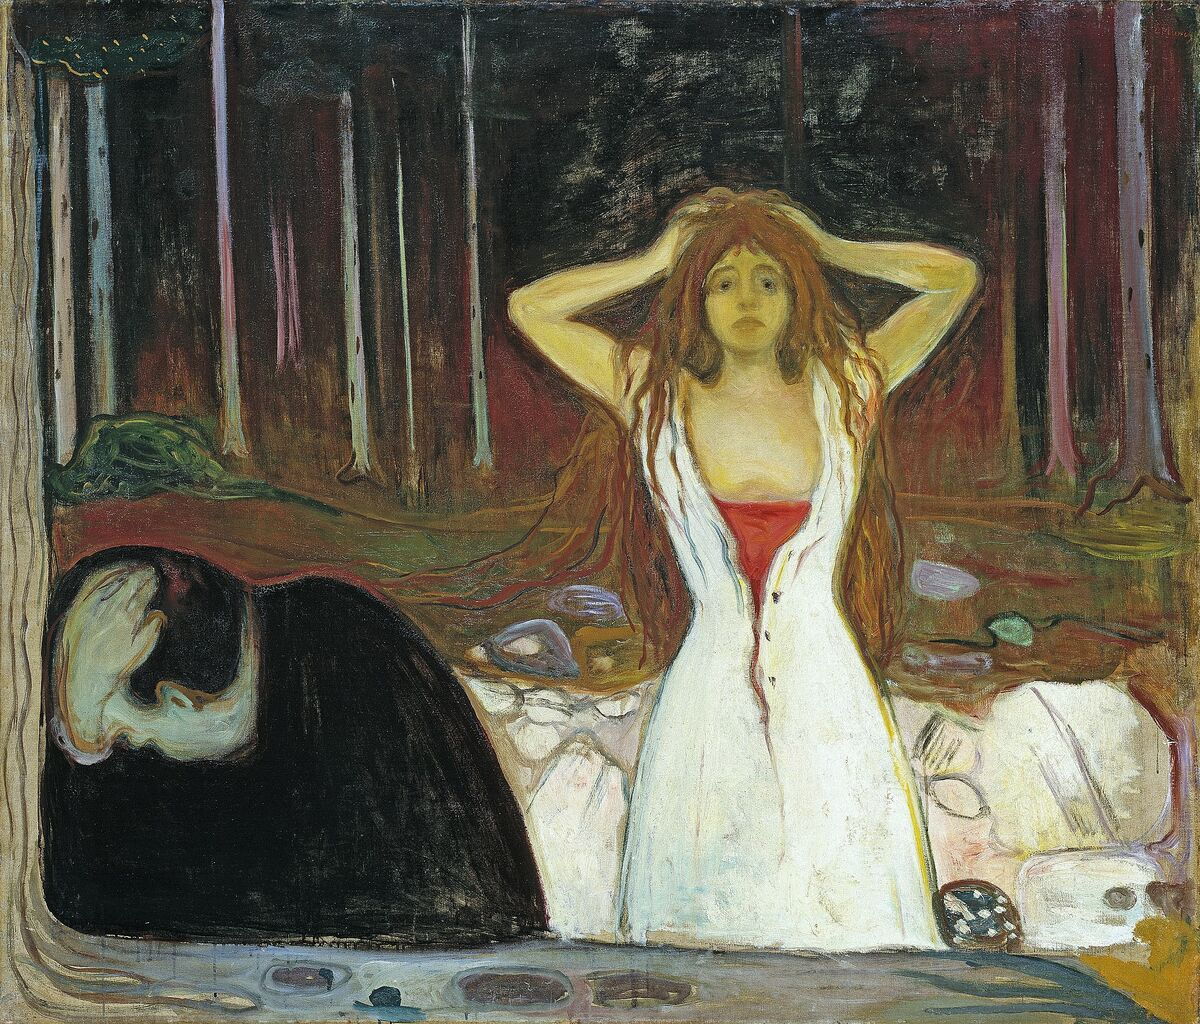 Edvard Munch, Ashes, 1895. Image via Wikimedia Commons.